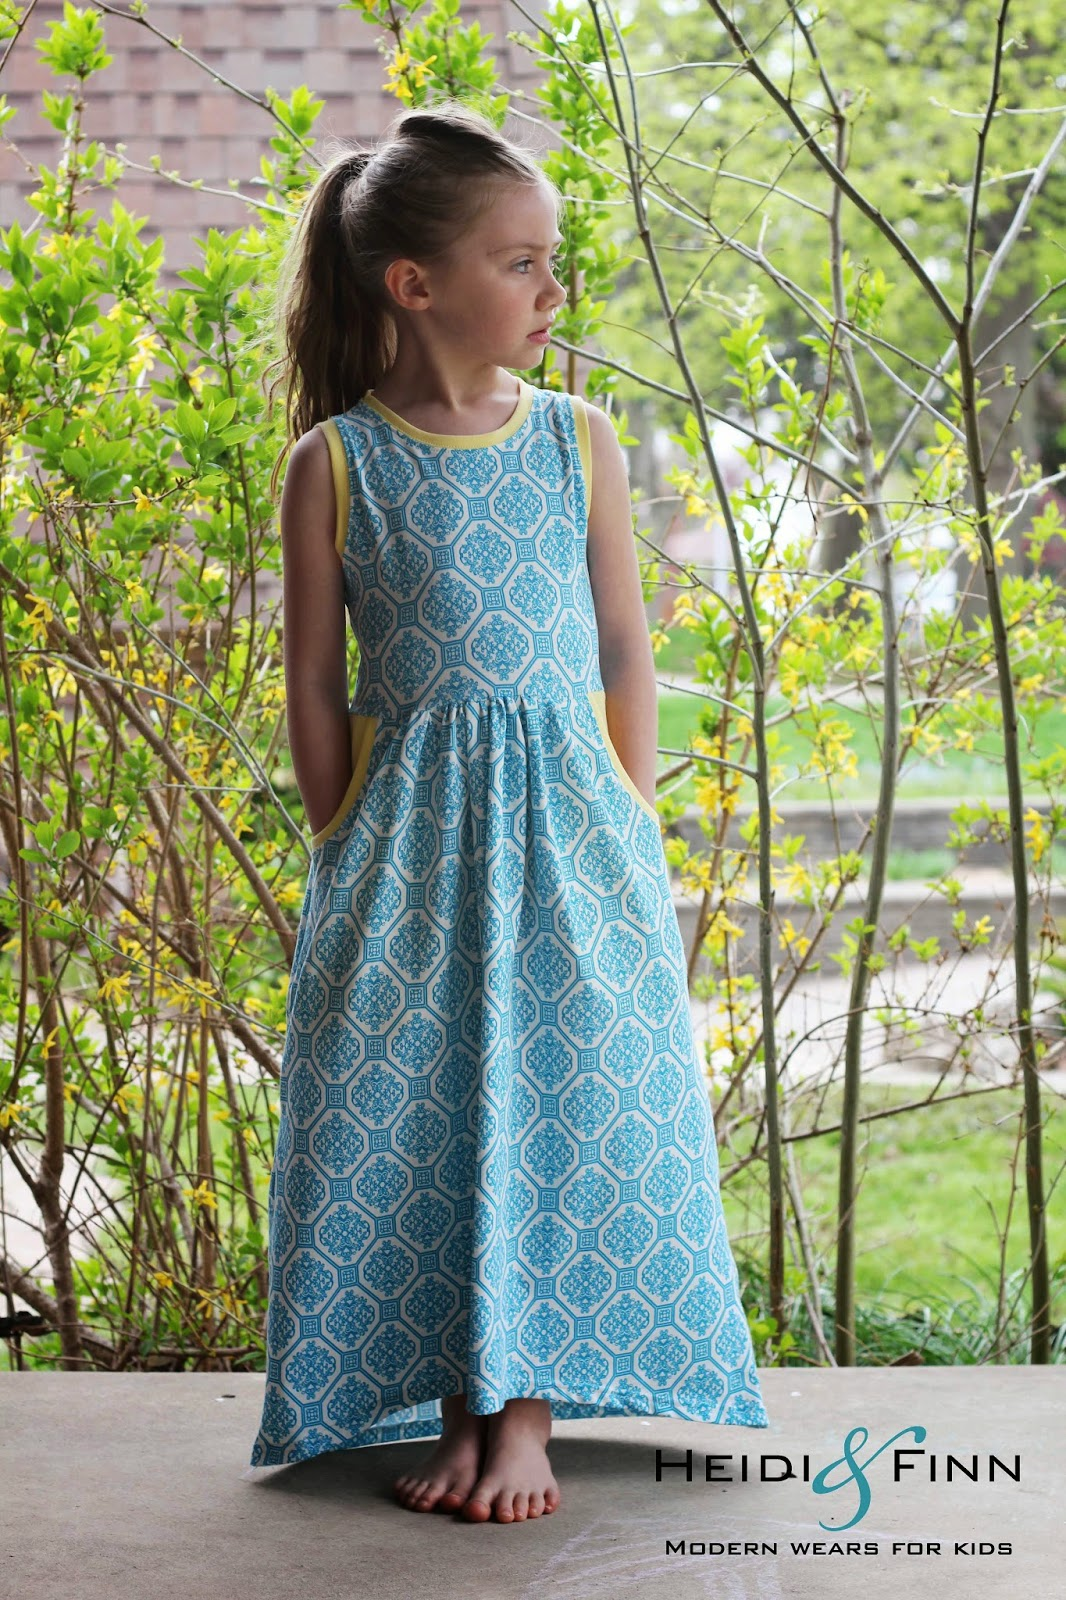 Long dress patterns to sew gallery craft decoration ideas heidiandfinn modern wears for kids summer of soleil a selvage summer of soleil a selvage designs jeuxipadfo Choice Image